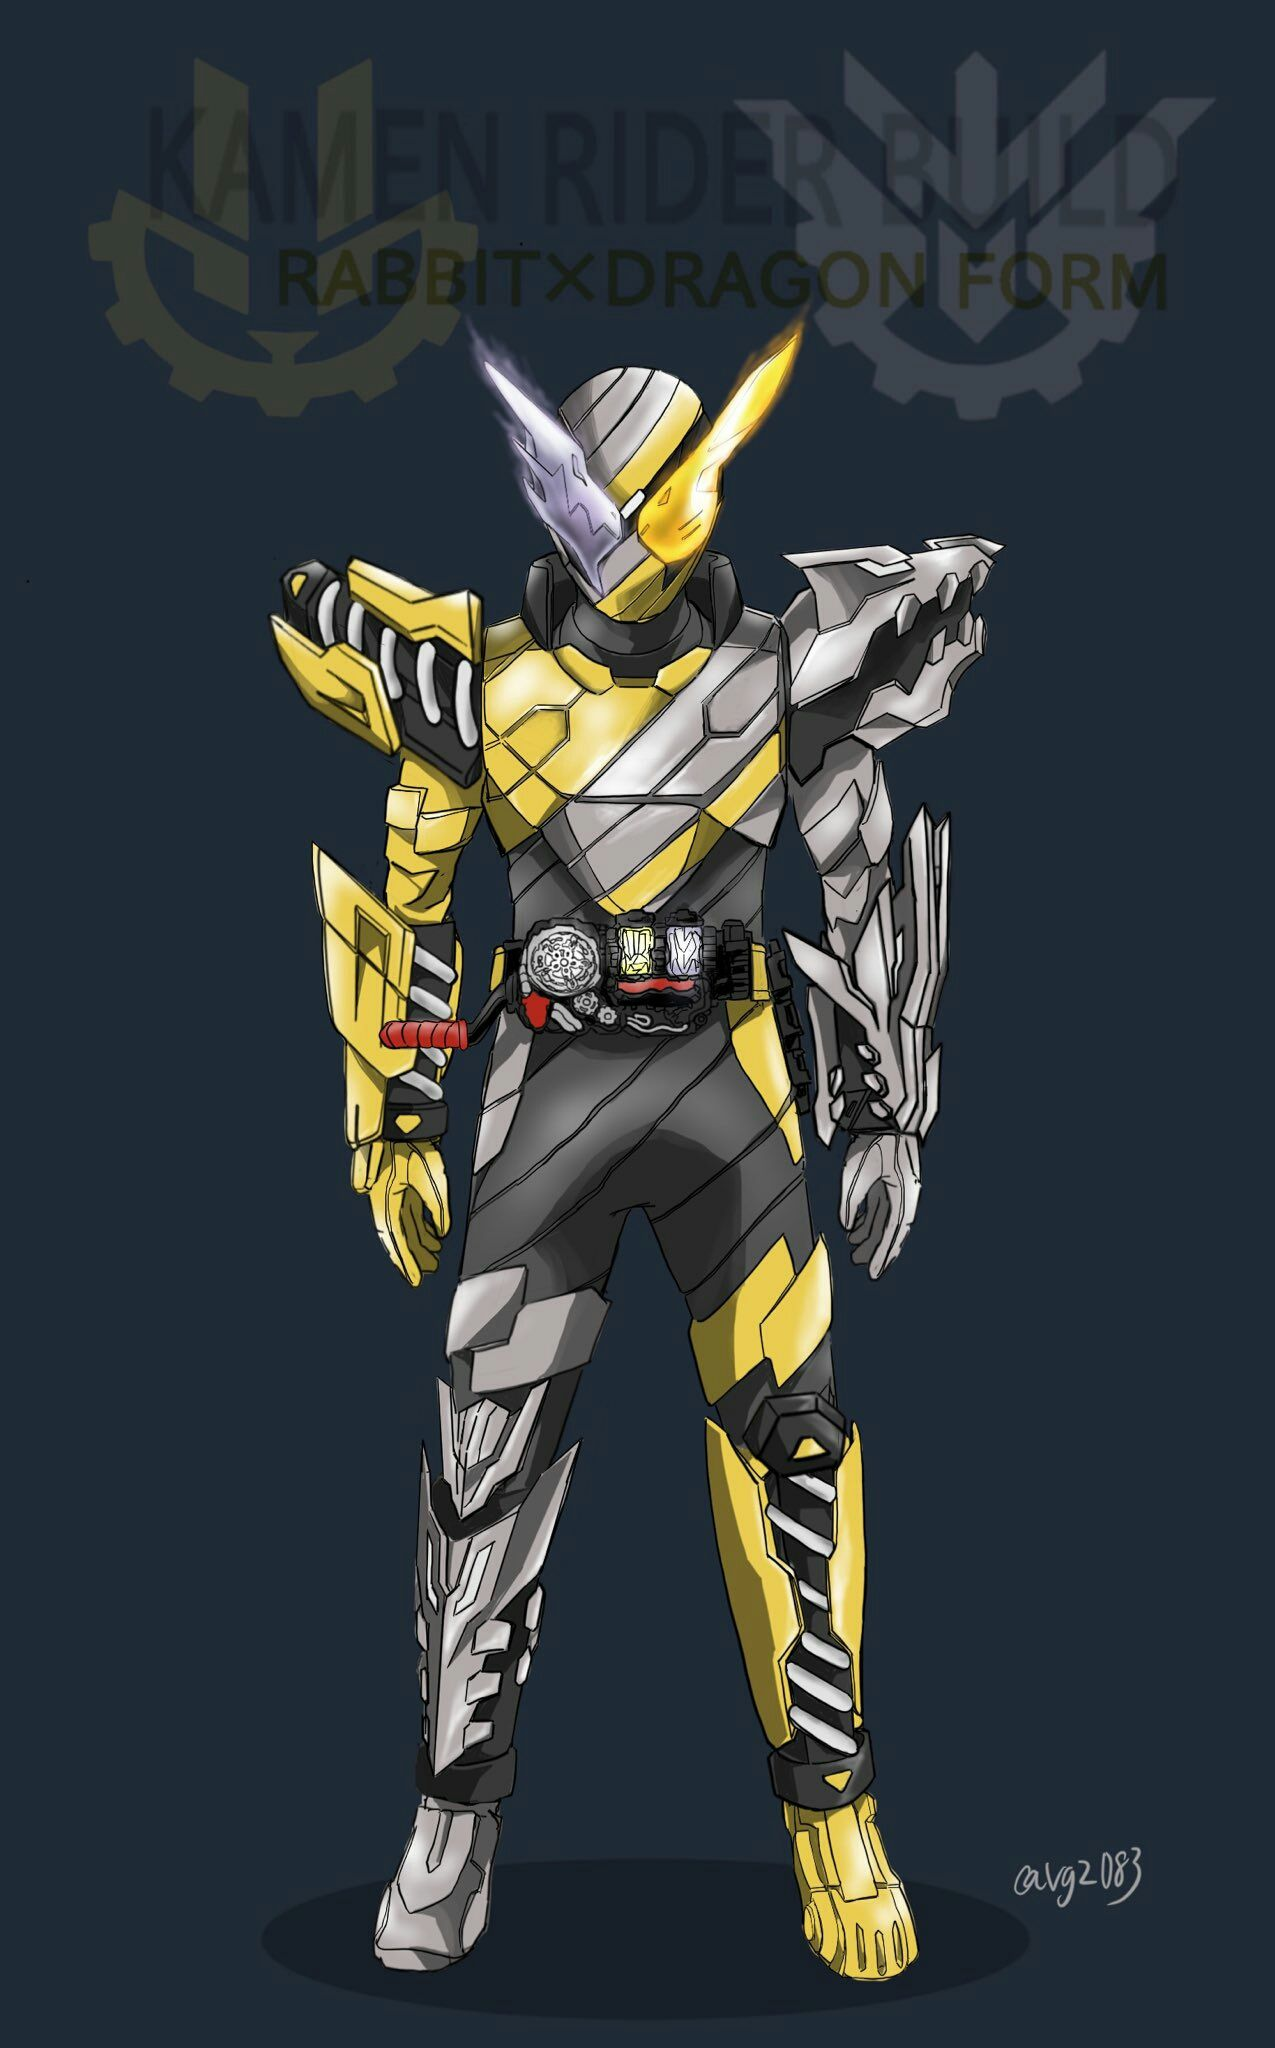 Kamen rider build rabbit x dragon form kamen rider pinterest kamen rider build rabbit x dragon form thecheapjerseys Gallery